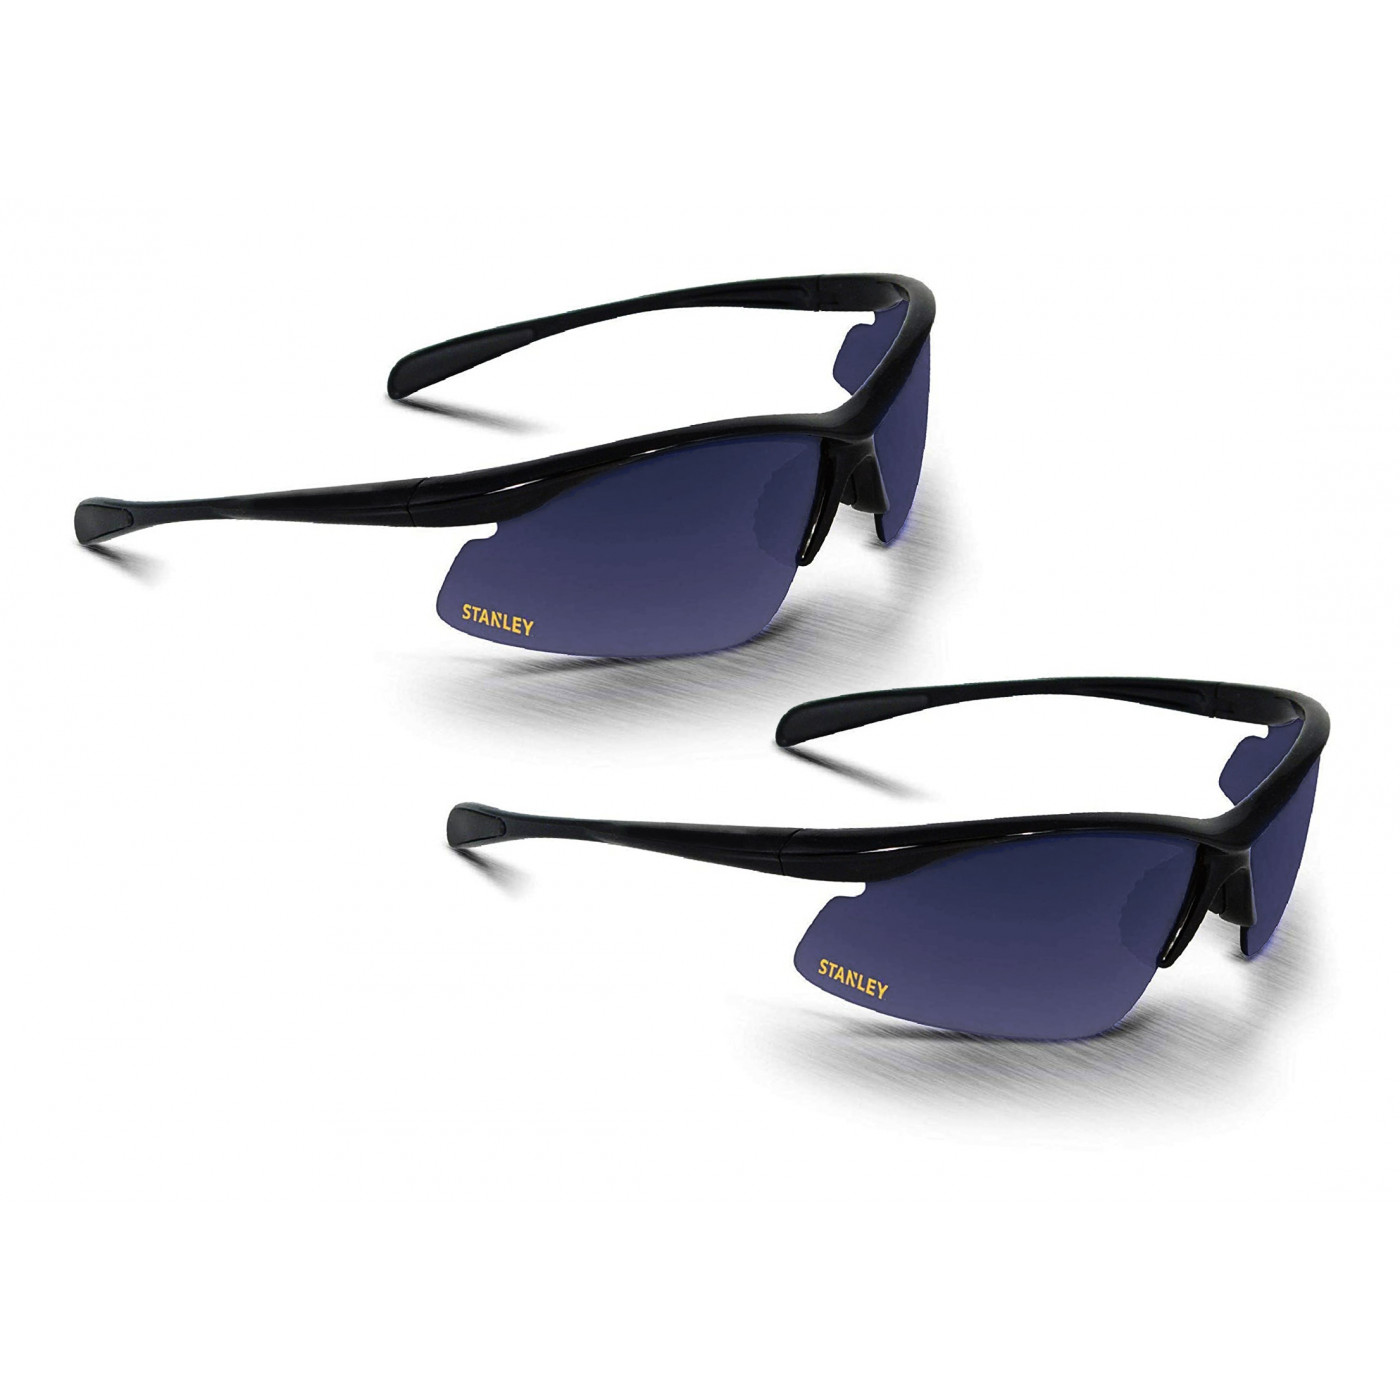 Set of 2 black safety goggles for protection during DIY jobs